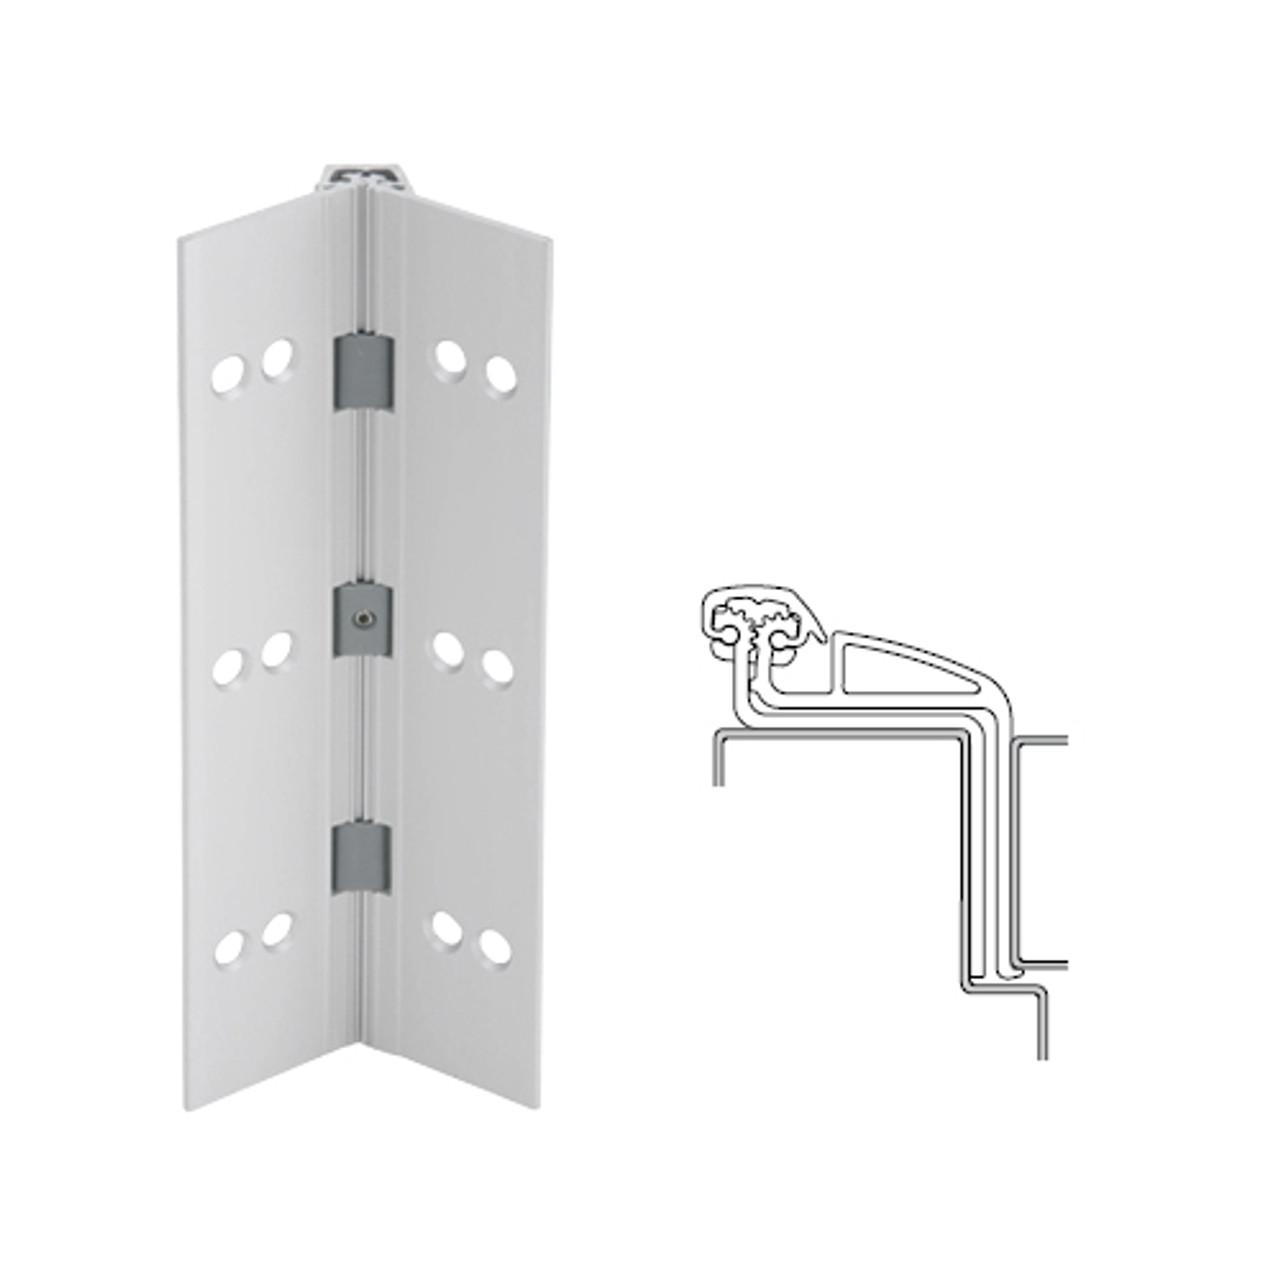 041XY-US28-85-TF IVES Full Mortise Continuous Geared Hinges with Thread Forming Screws in Satin Aluminum